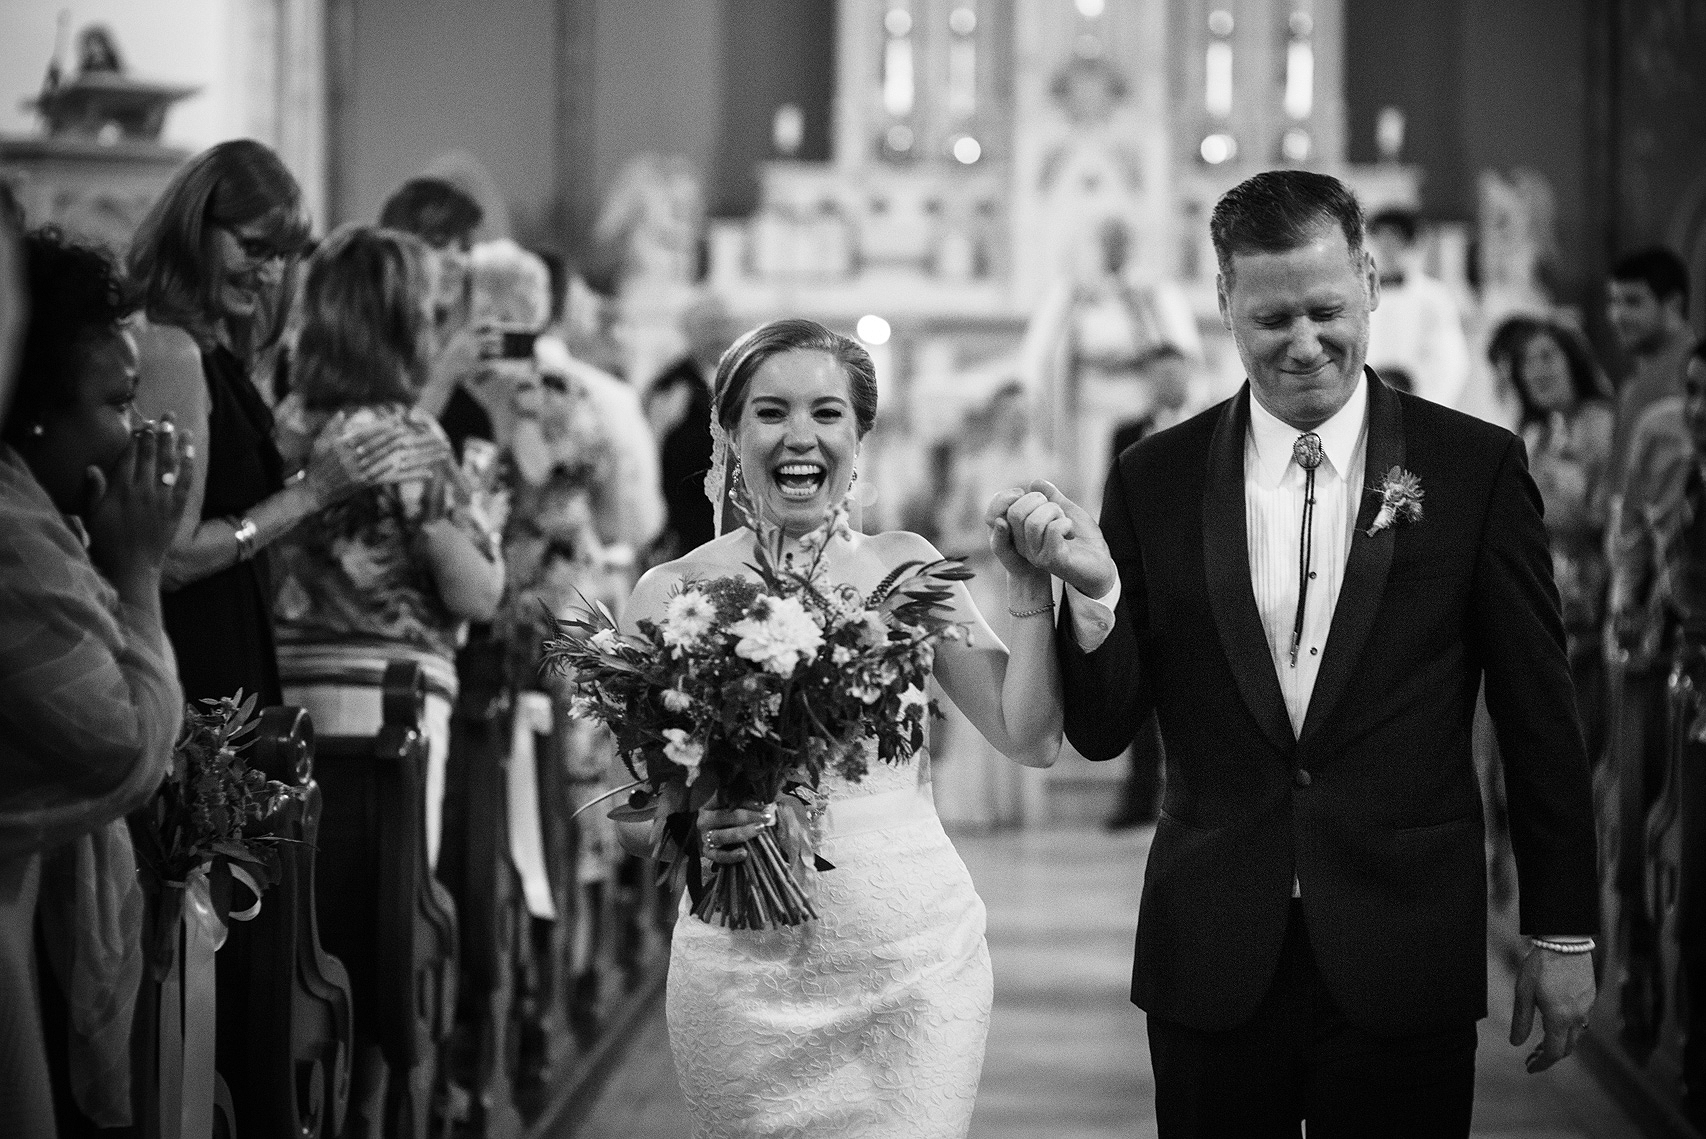 Wedding couple smiling as they exit their ceremony in Baltimore, Maryland